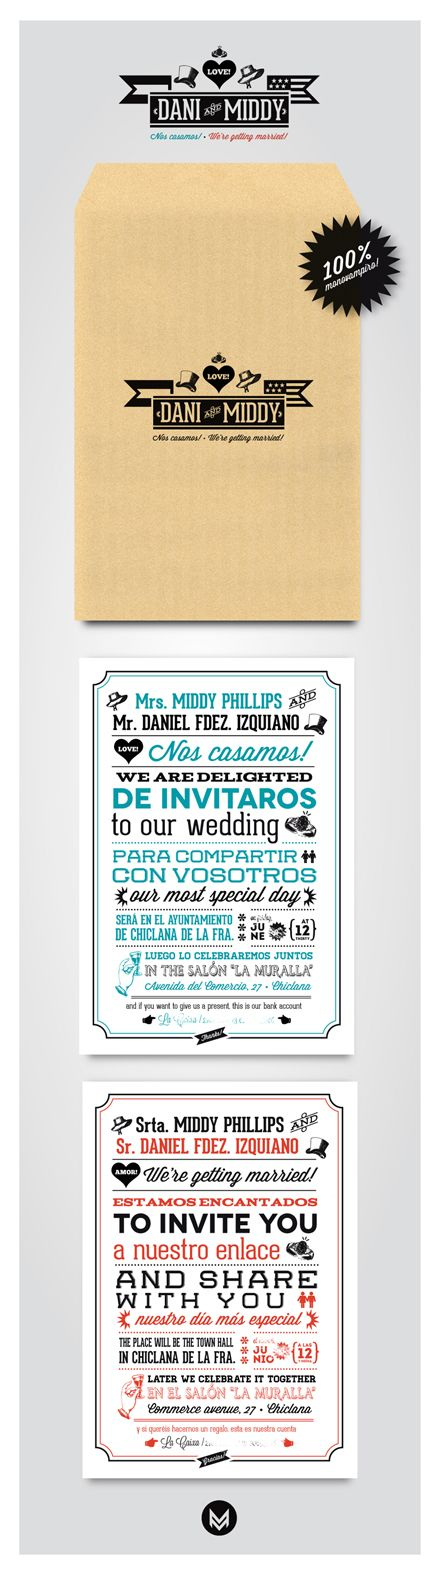 Hand Cancelling Wedding Invitations as nice invitation template